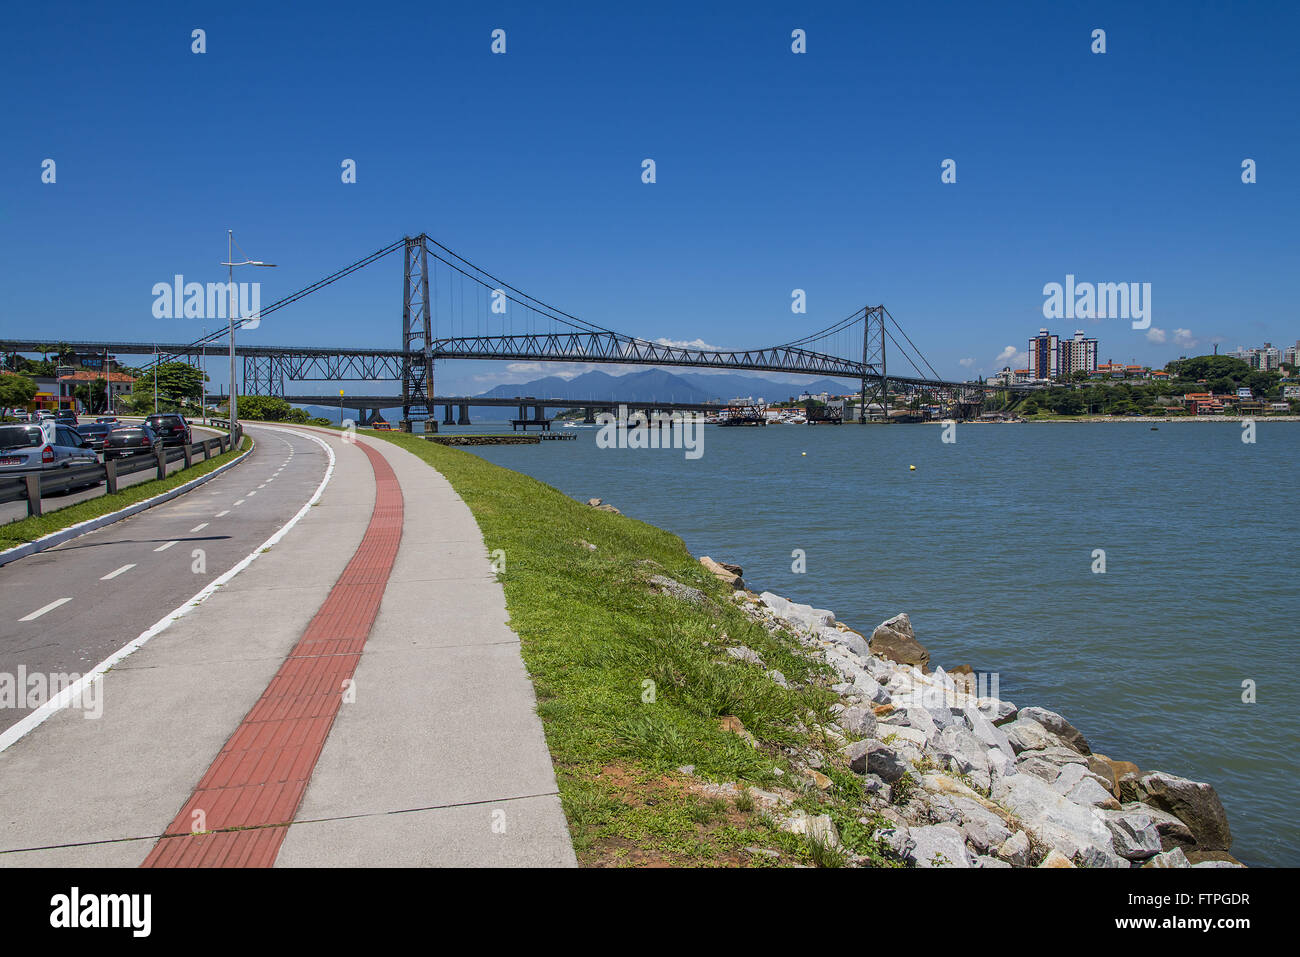 Cycleway and promenade on the Avenida Beira Mar Norte - Stock Image